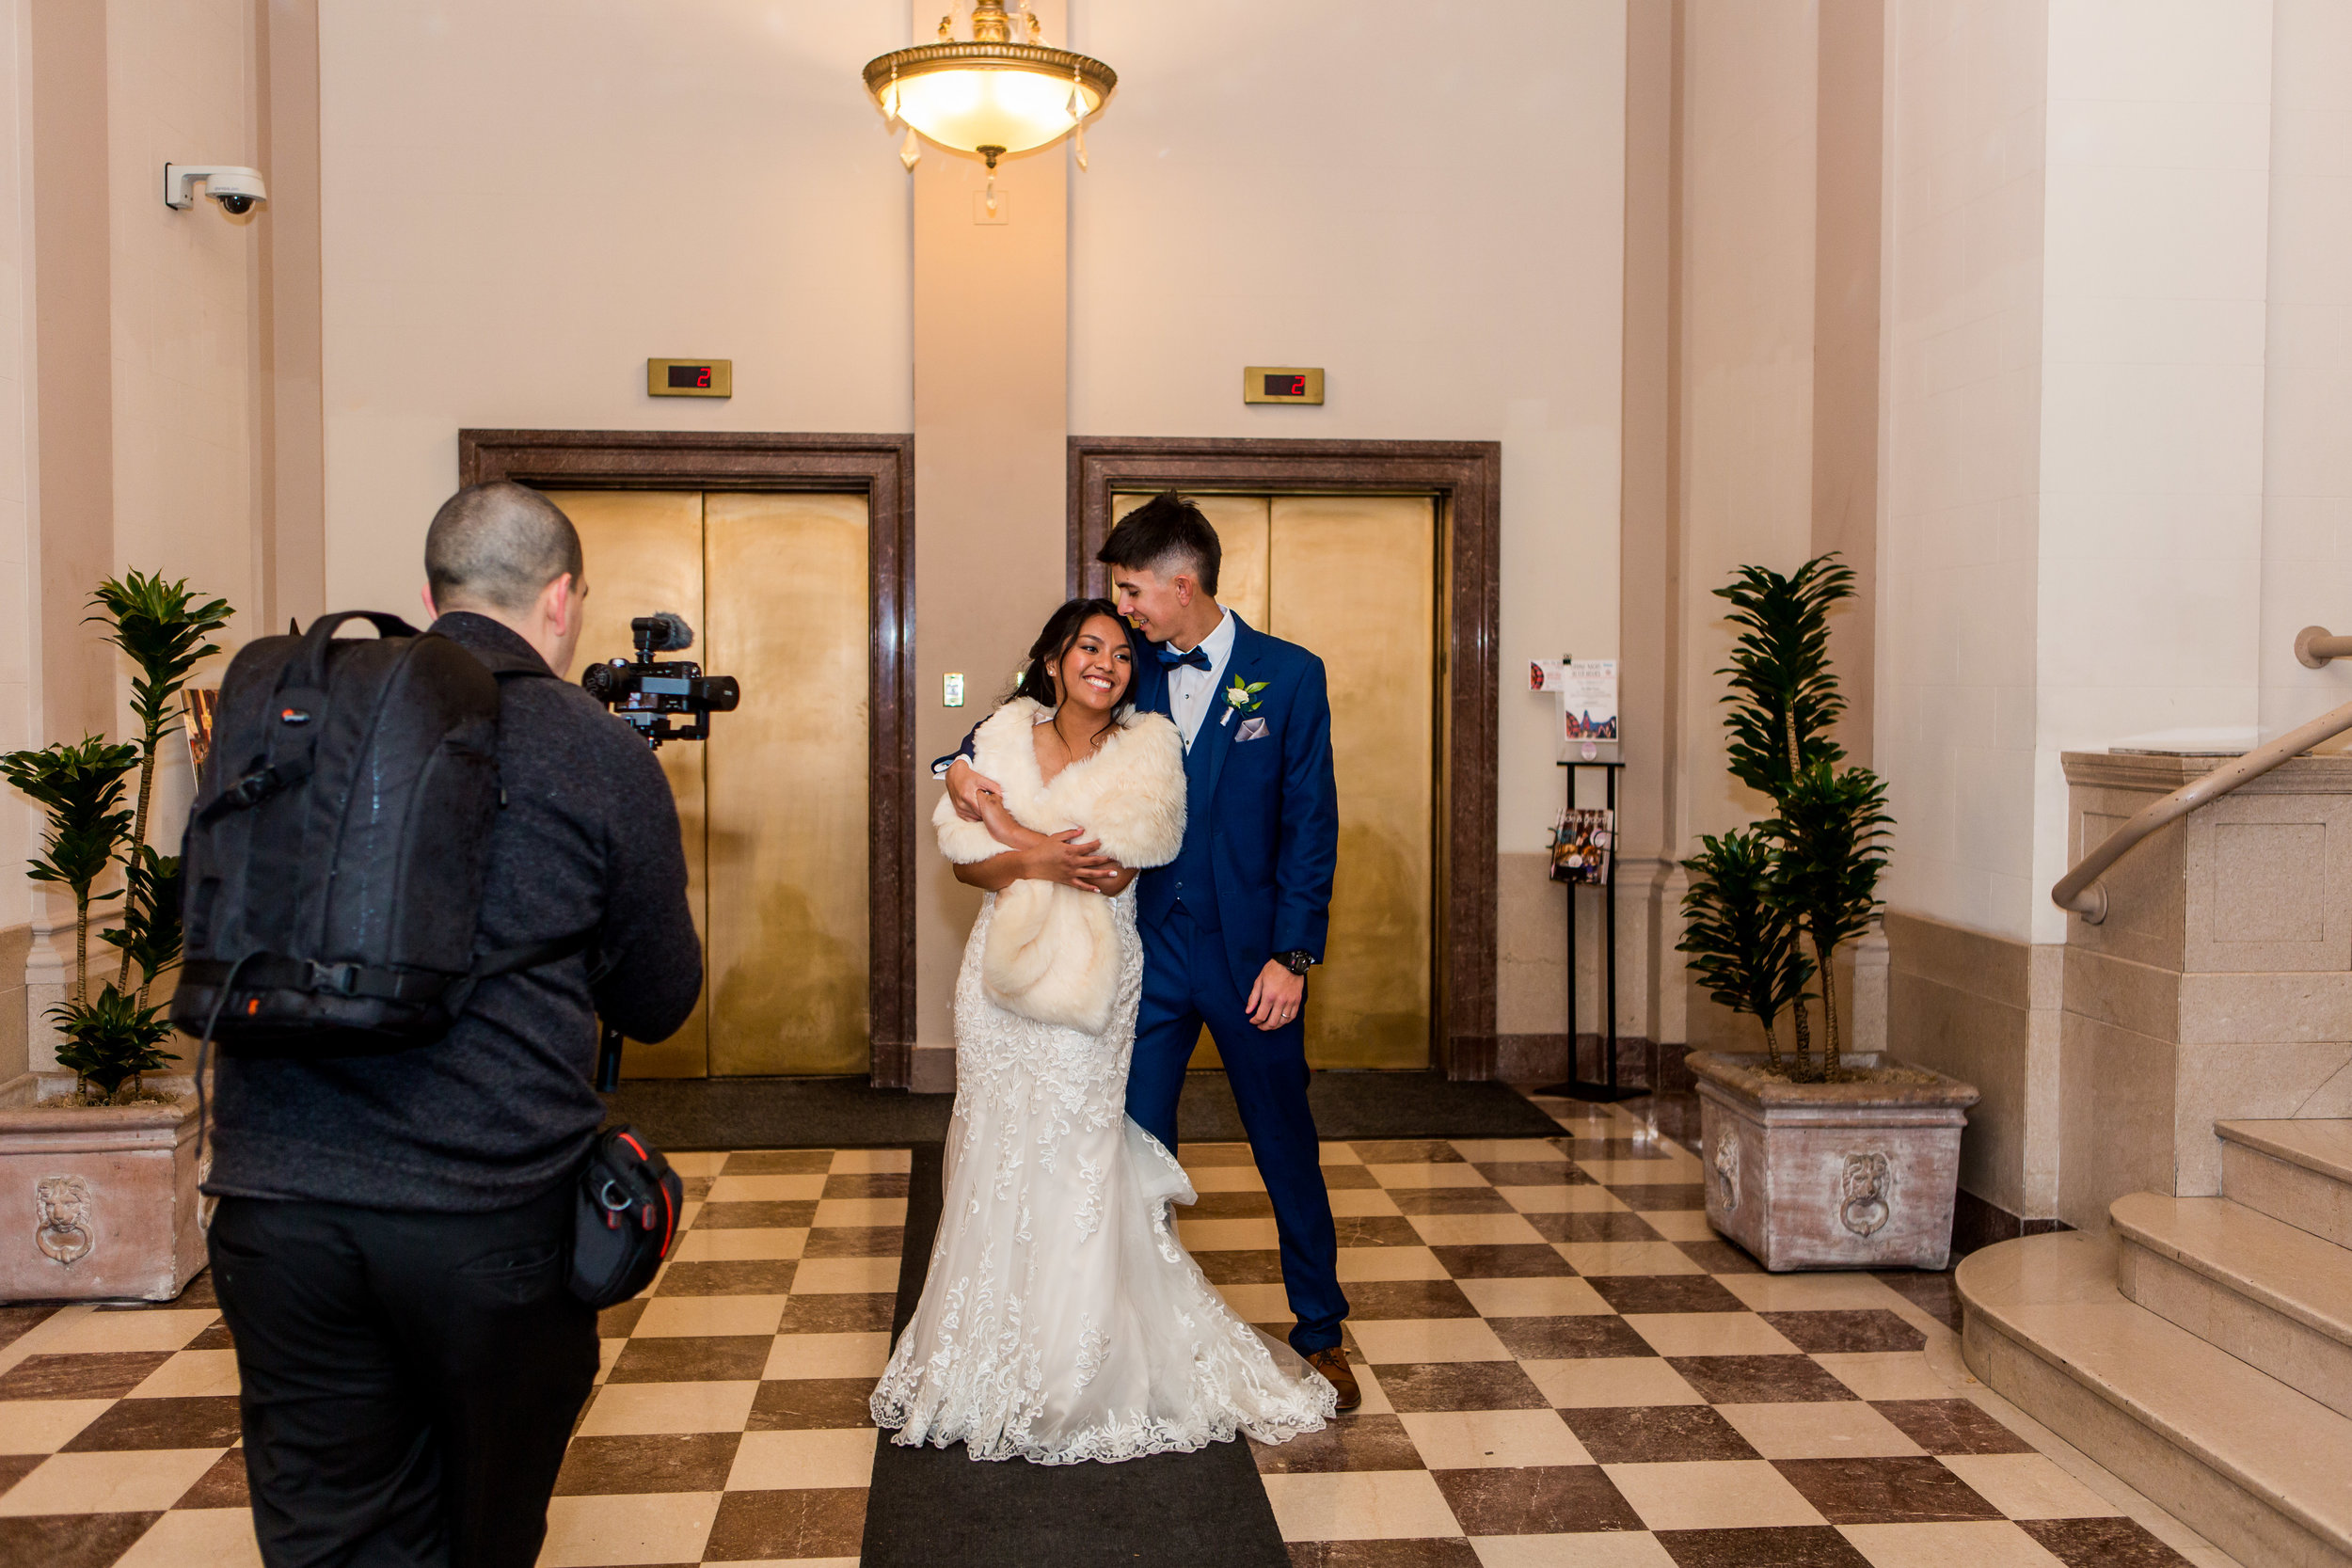 two full time videographers - They know how to get the shots without you feeling like they are taking over the day, and capturing your love coming alive in motion!